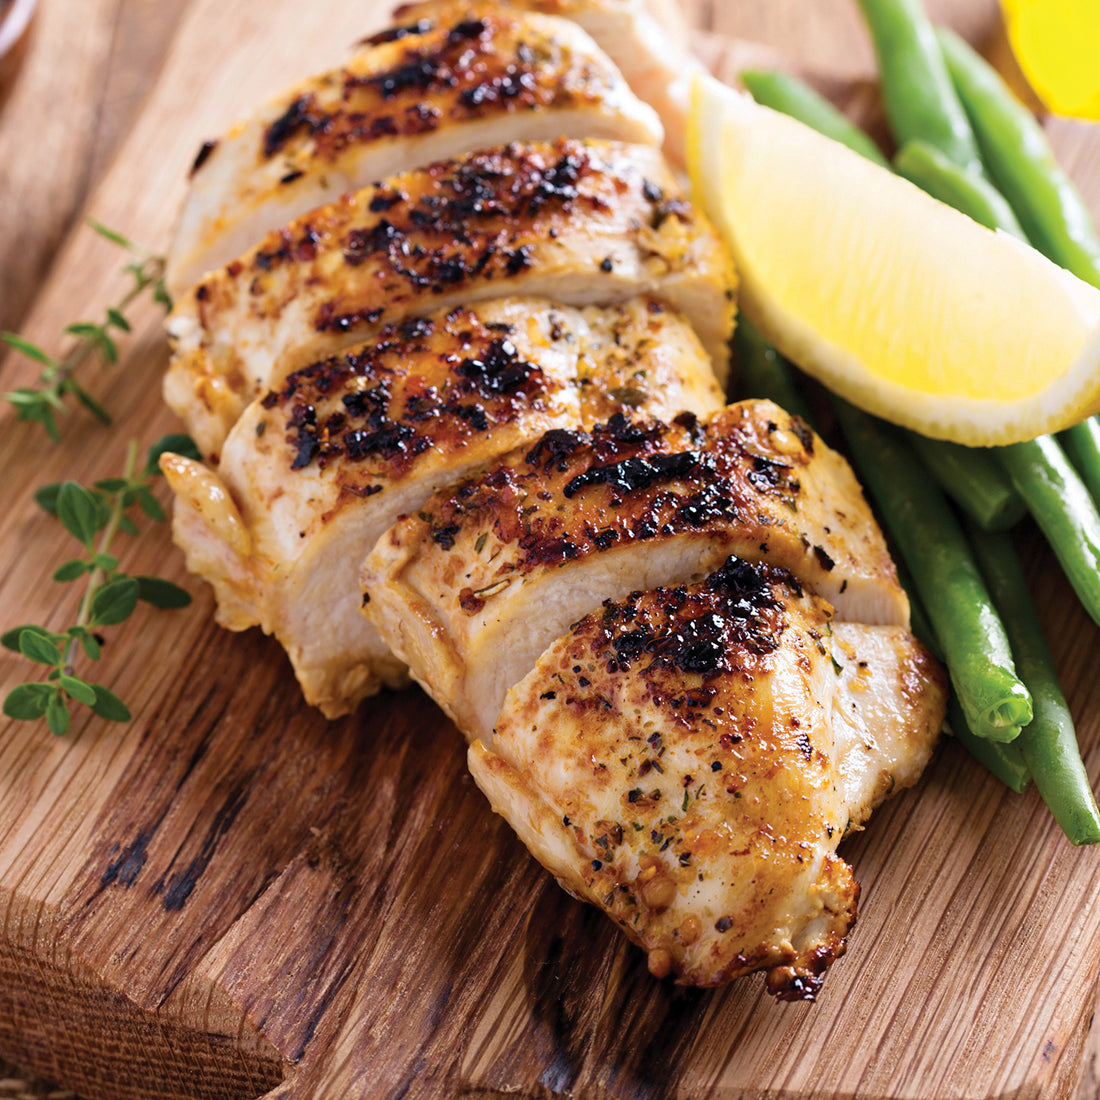 Zesty Lemon Pepper Seasoning on chicken breast.